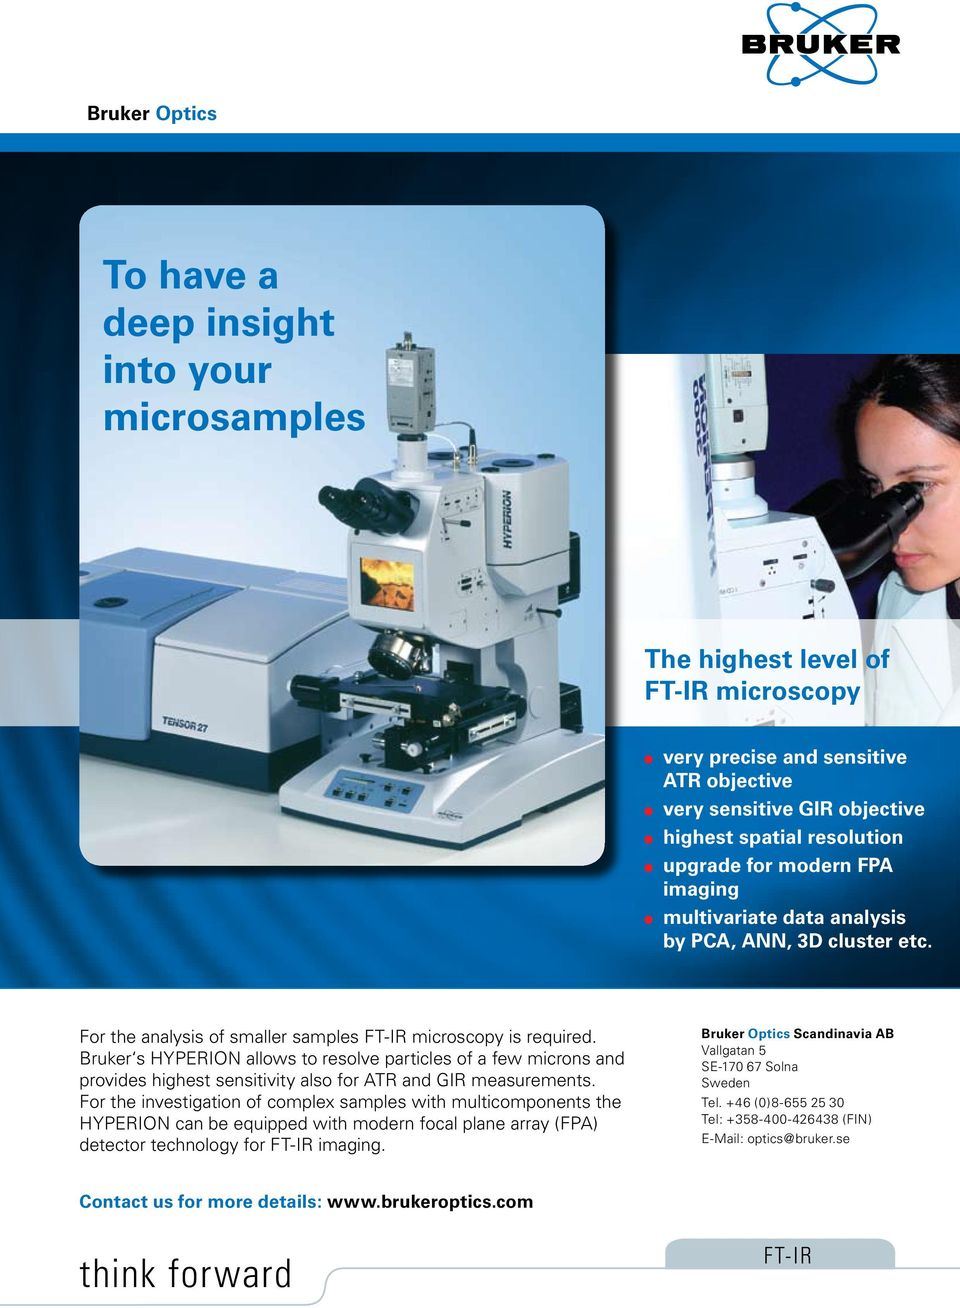 Bruker s HYPERION allows to resolve particles of a few microns and provides highest sensitivity also for ATR and GIR measurements.